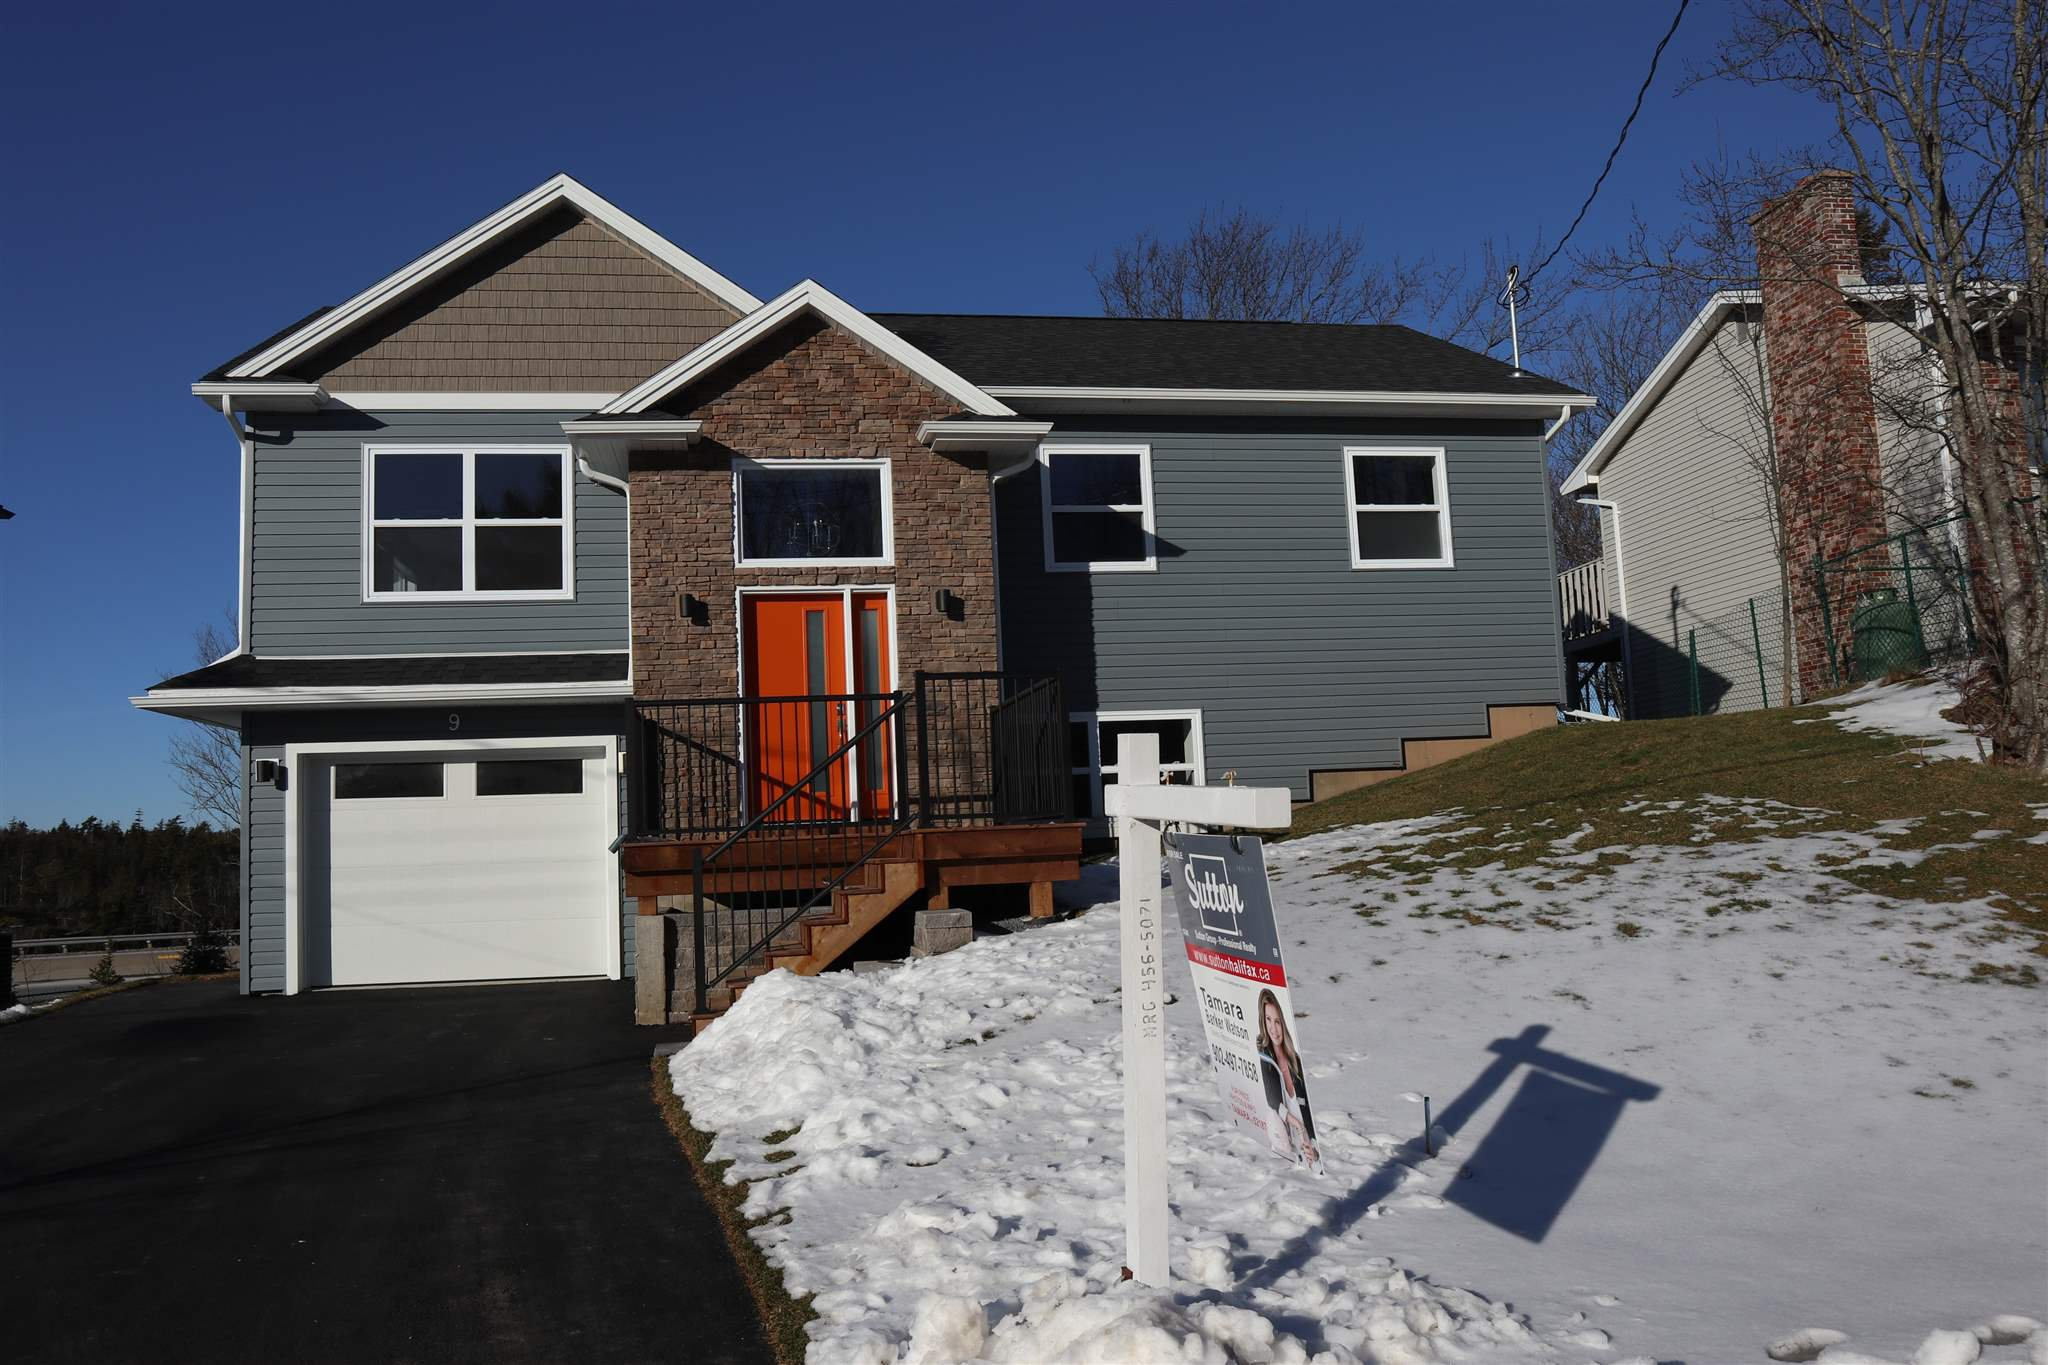 Main Photo: 9 Alpine Court in Bedford West: 20-Bedford Residential for sale (Halifax-Dartmouth)  : MLS®# 202005638